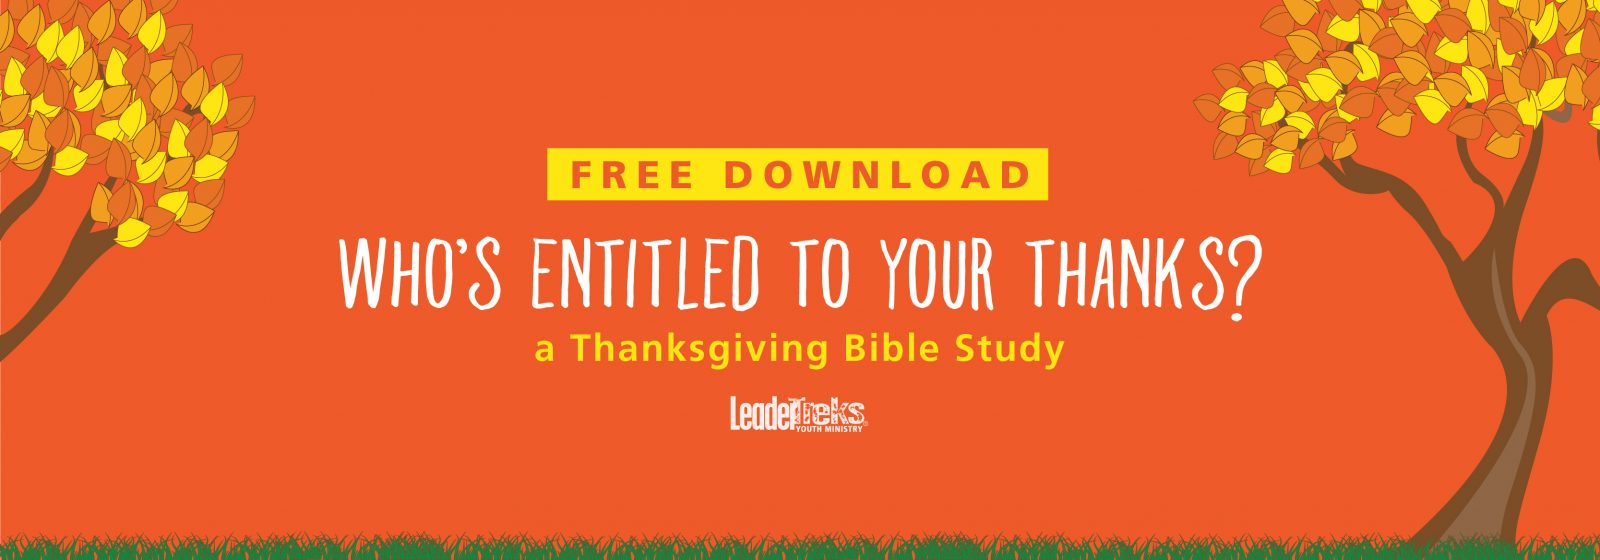 free thanksgiving bible lesson for youth ministry